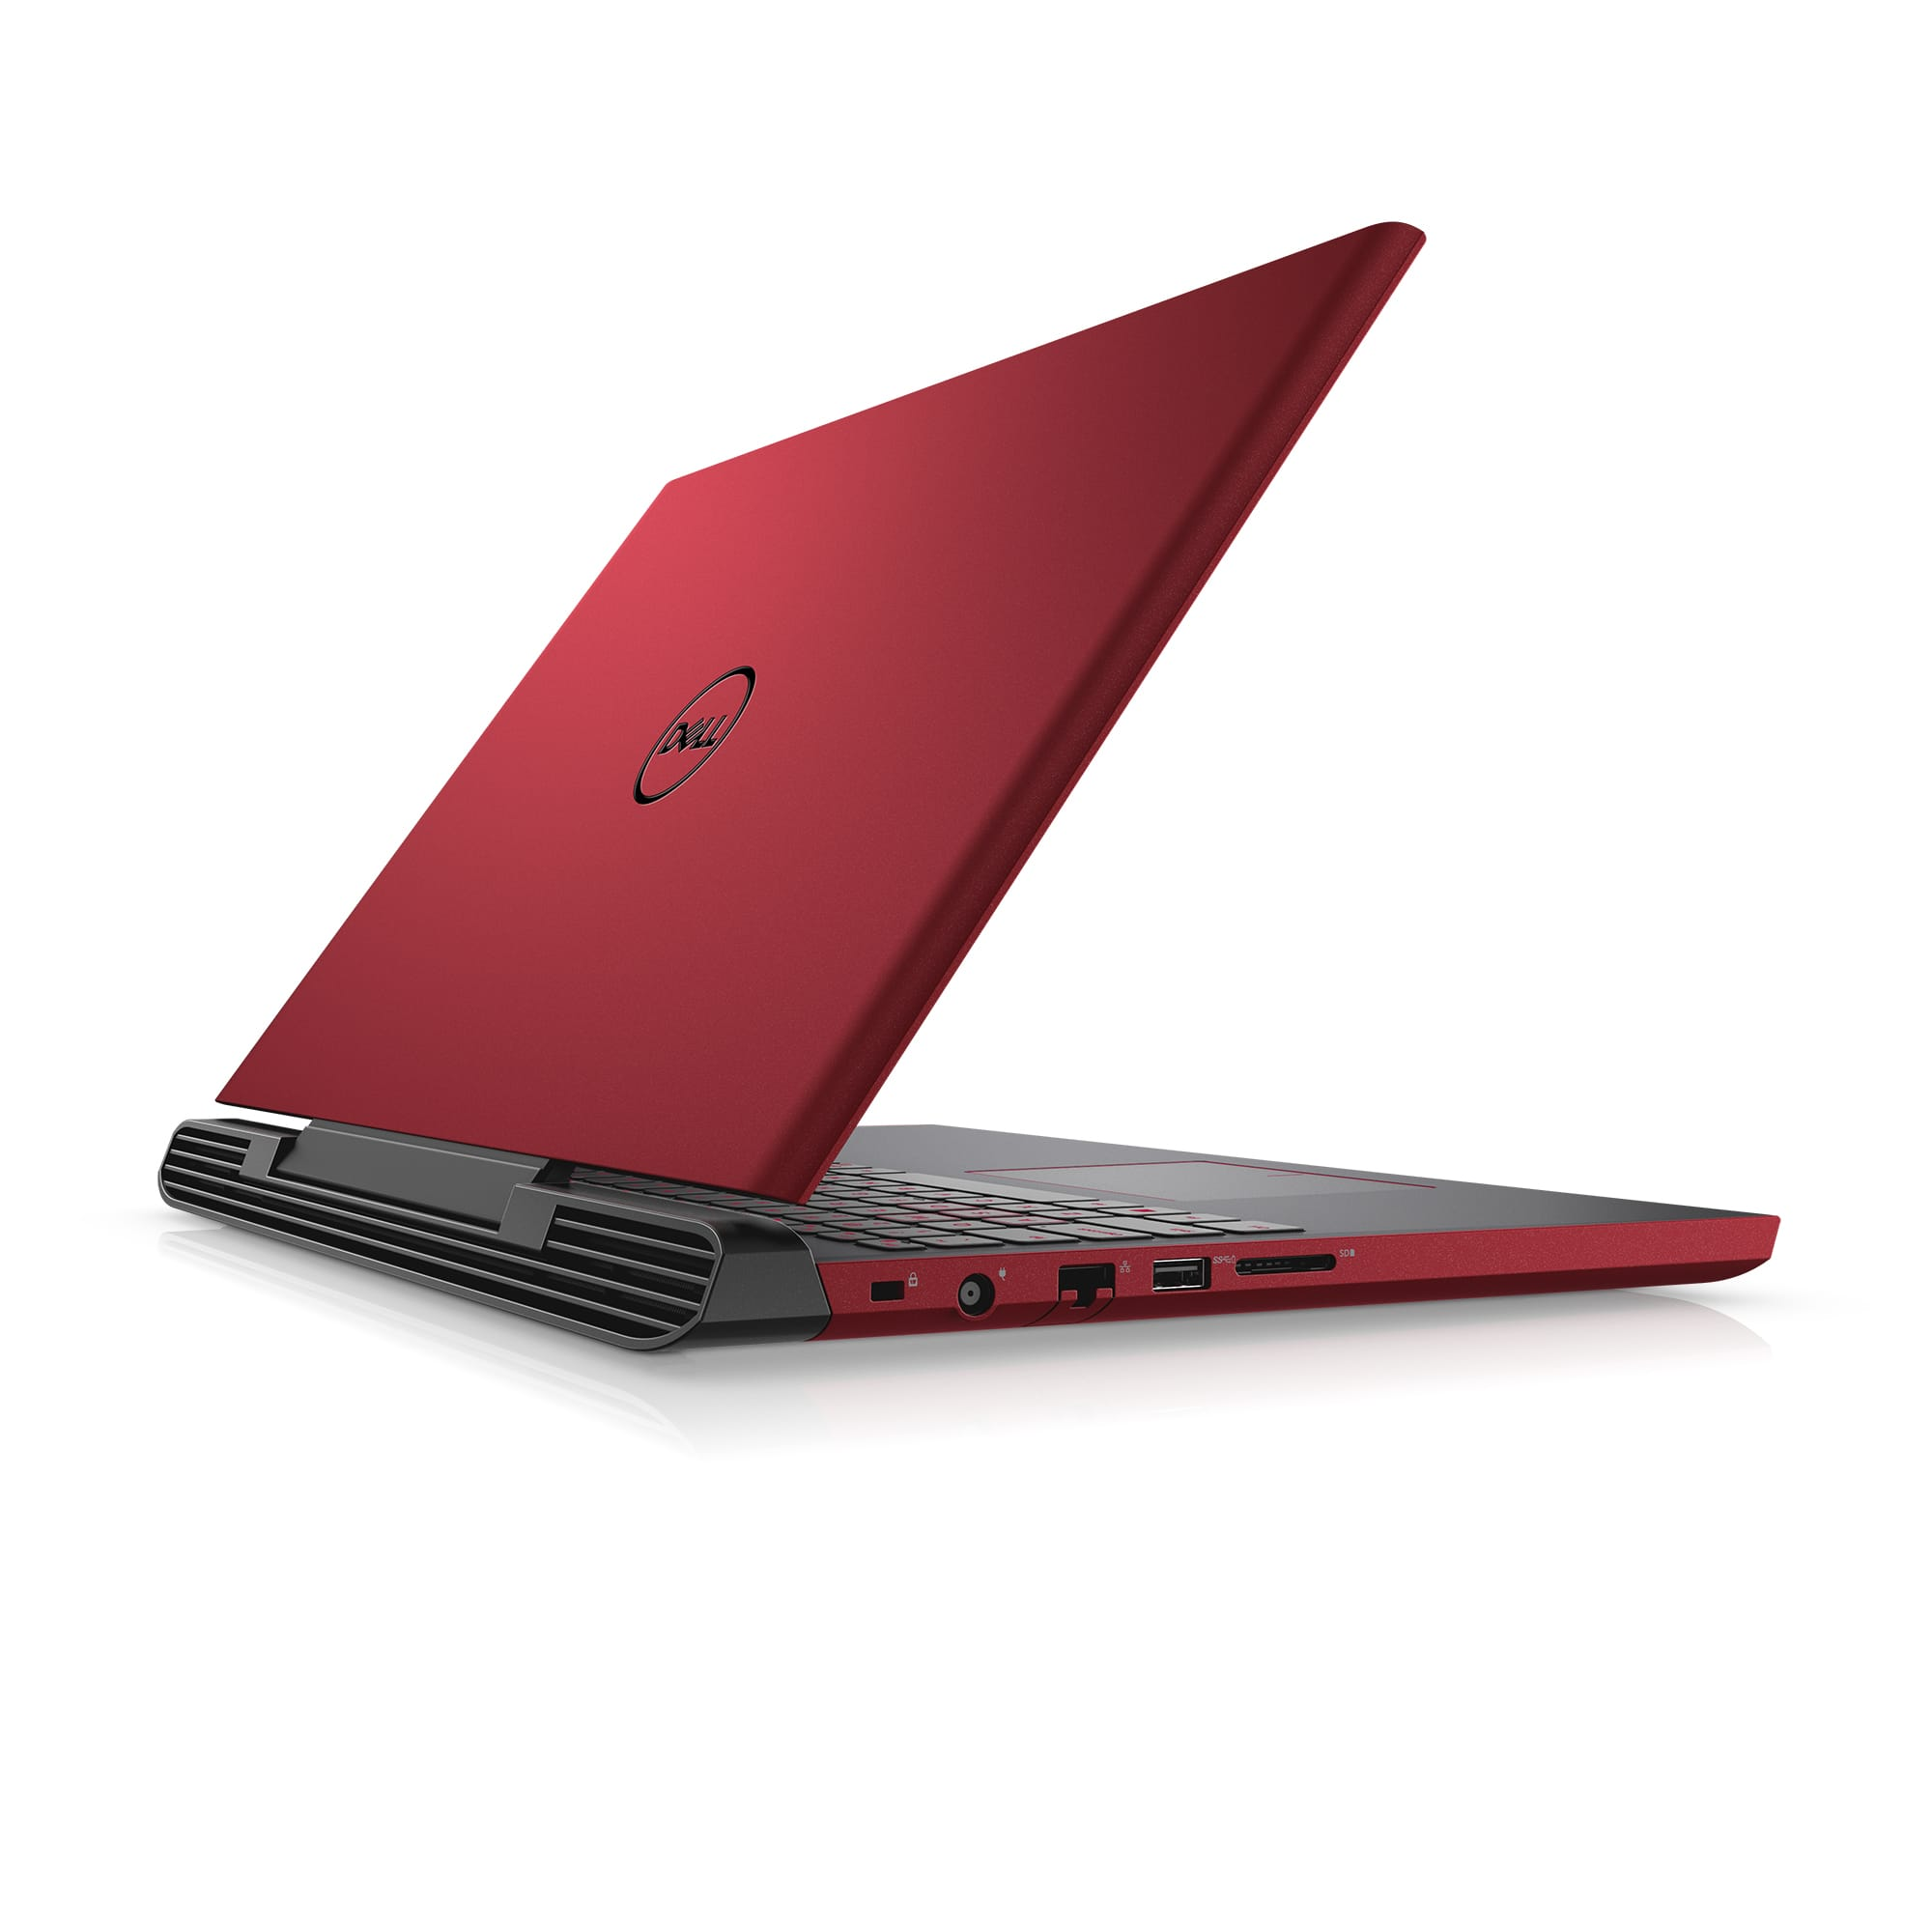 Dell G5 5587: 15.6'' FHD IPS, i5-8300H, 16GB DDR4, 256GB SSD + 1TB HDD, GTX 1060 6GB, Thunderbolt 3, Win10H @ $779 + F/S